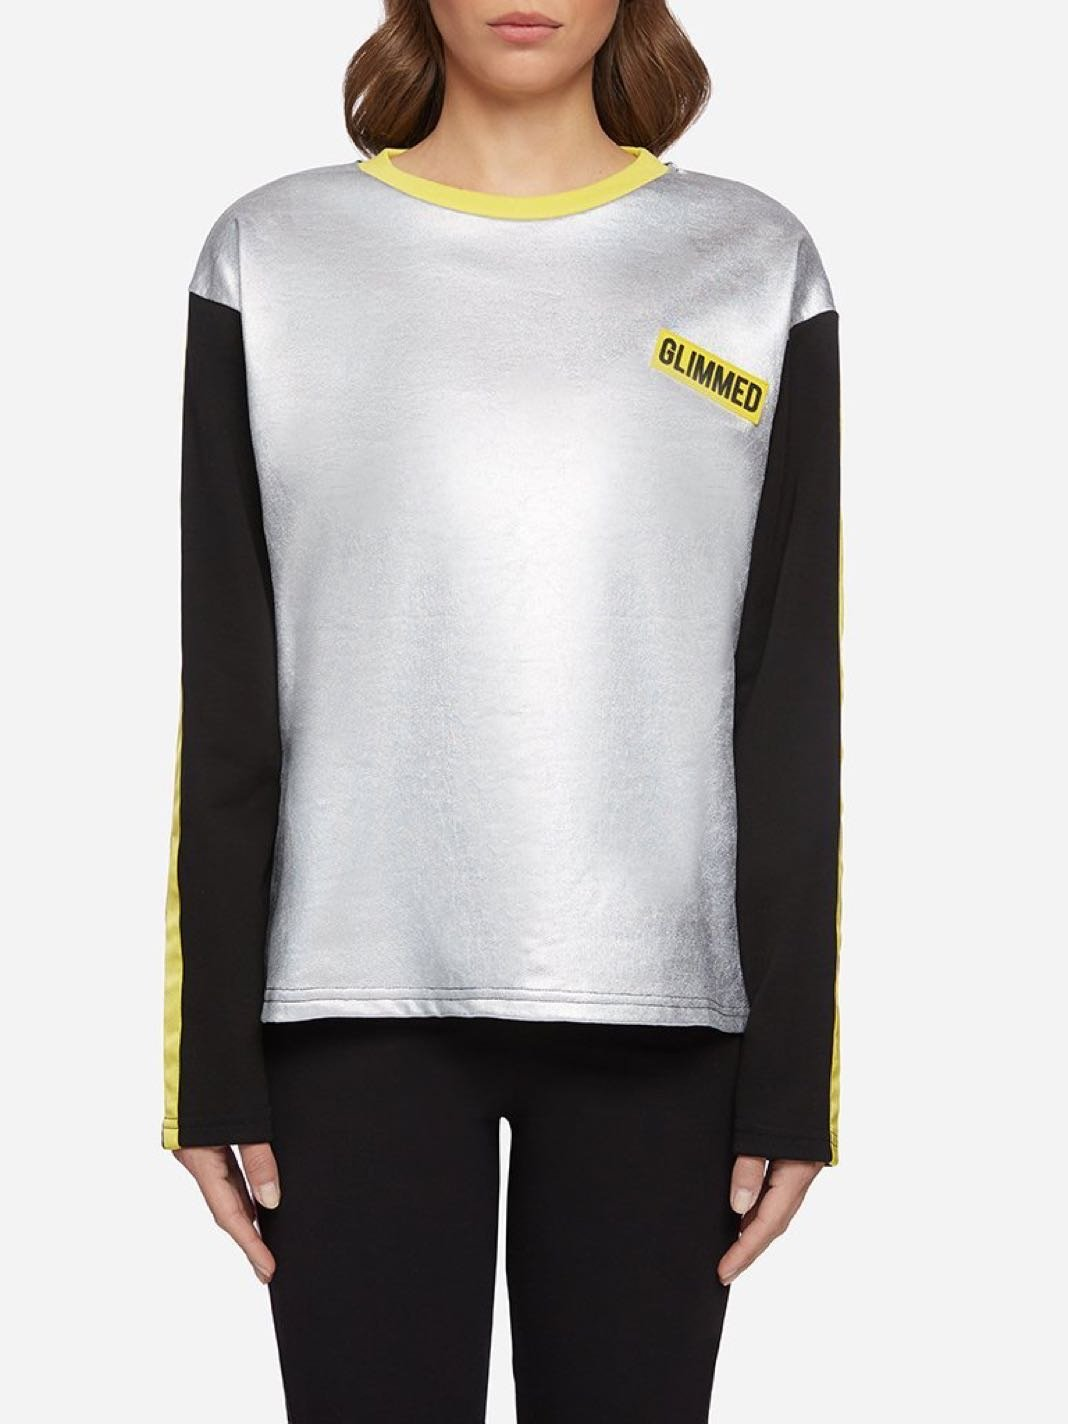 Iridescent Sweatshirt - The Bobby Boga